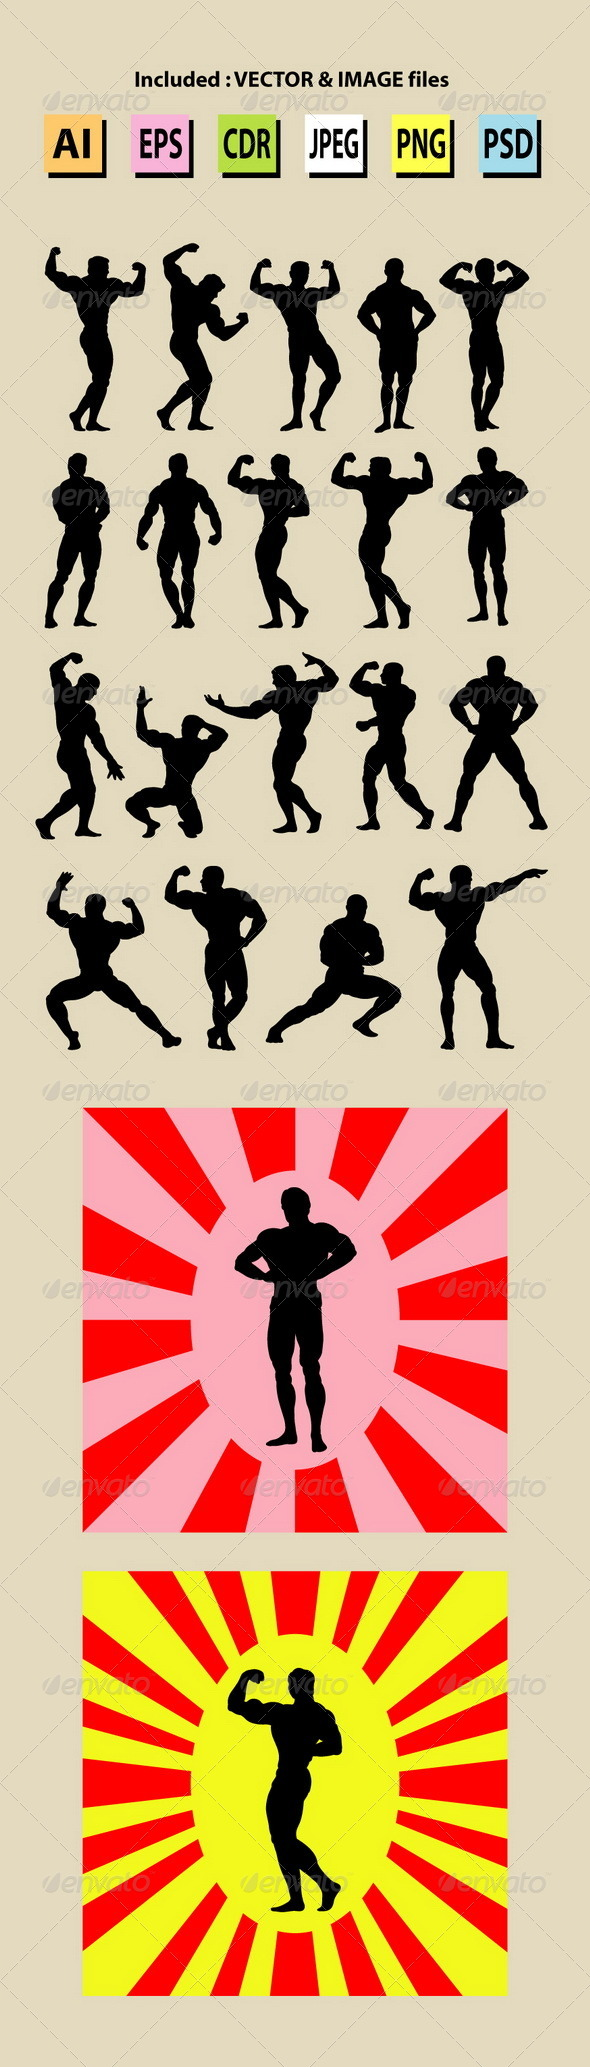 GraphicRiver Bodybuilding Silhouettes 6089816